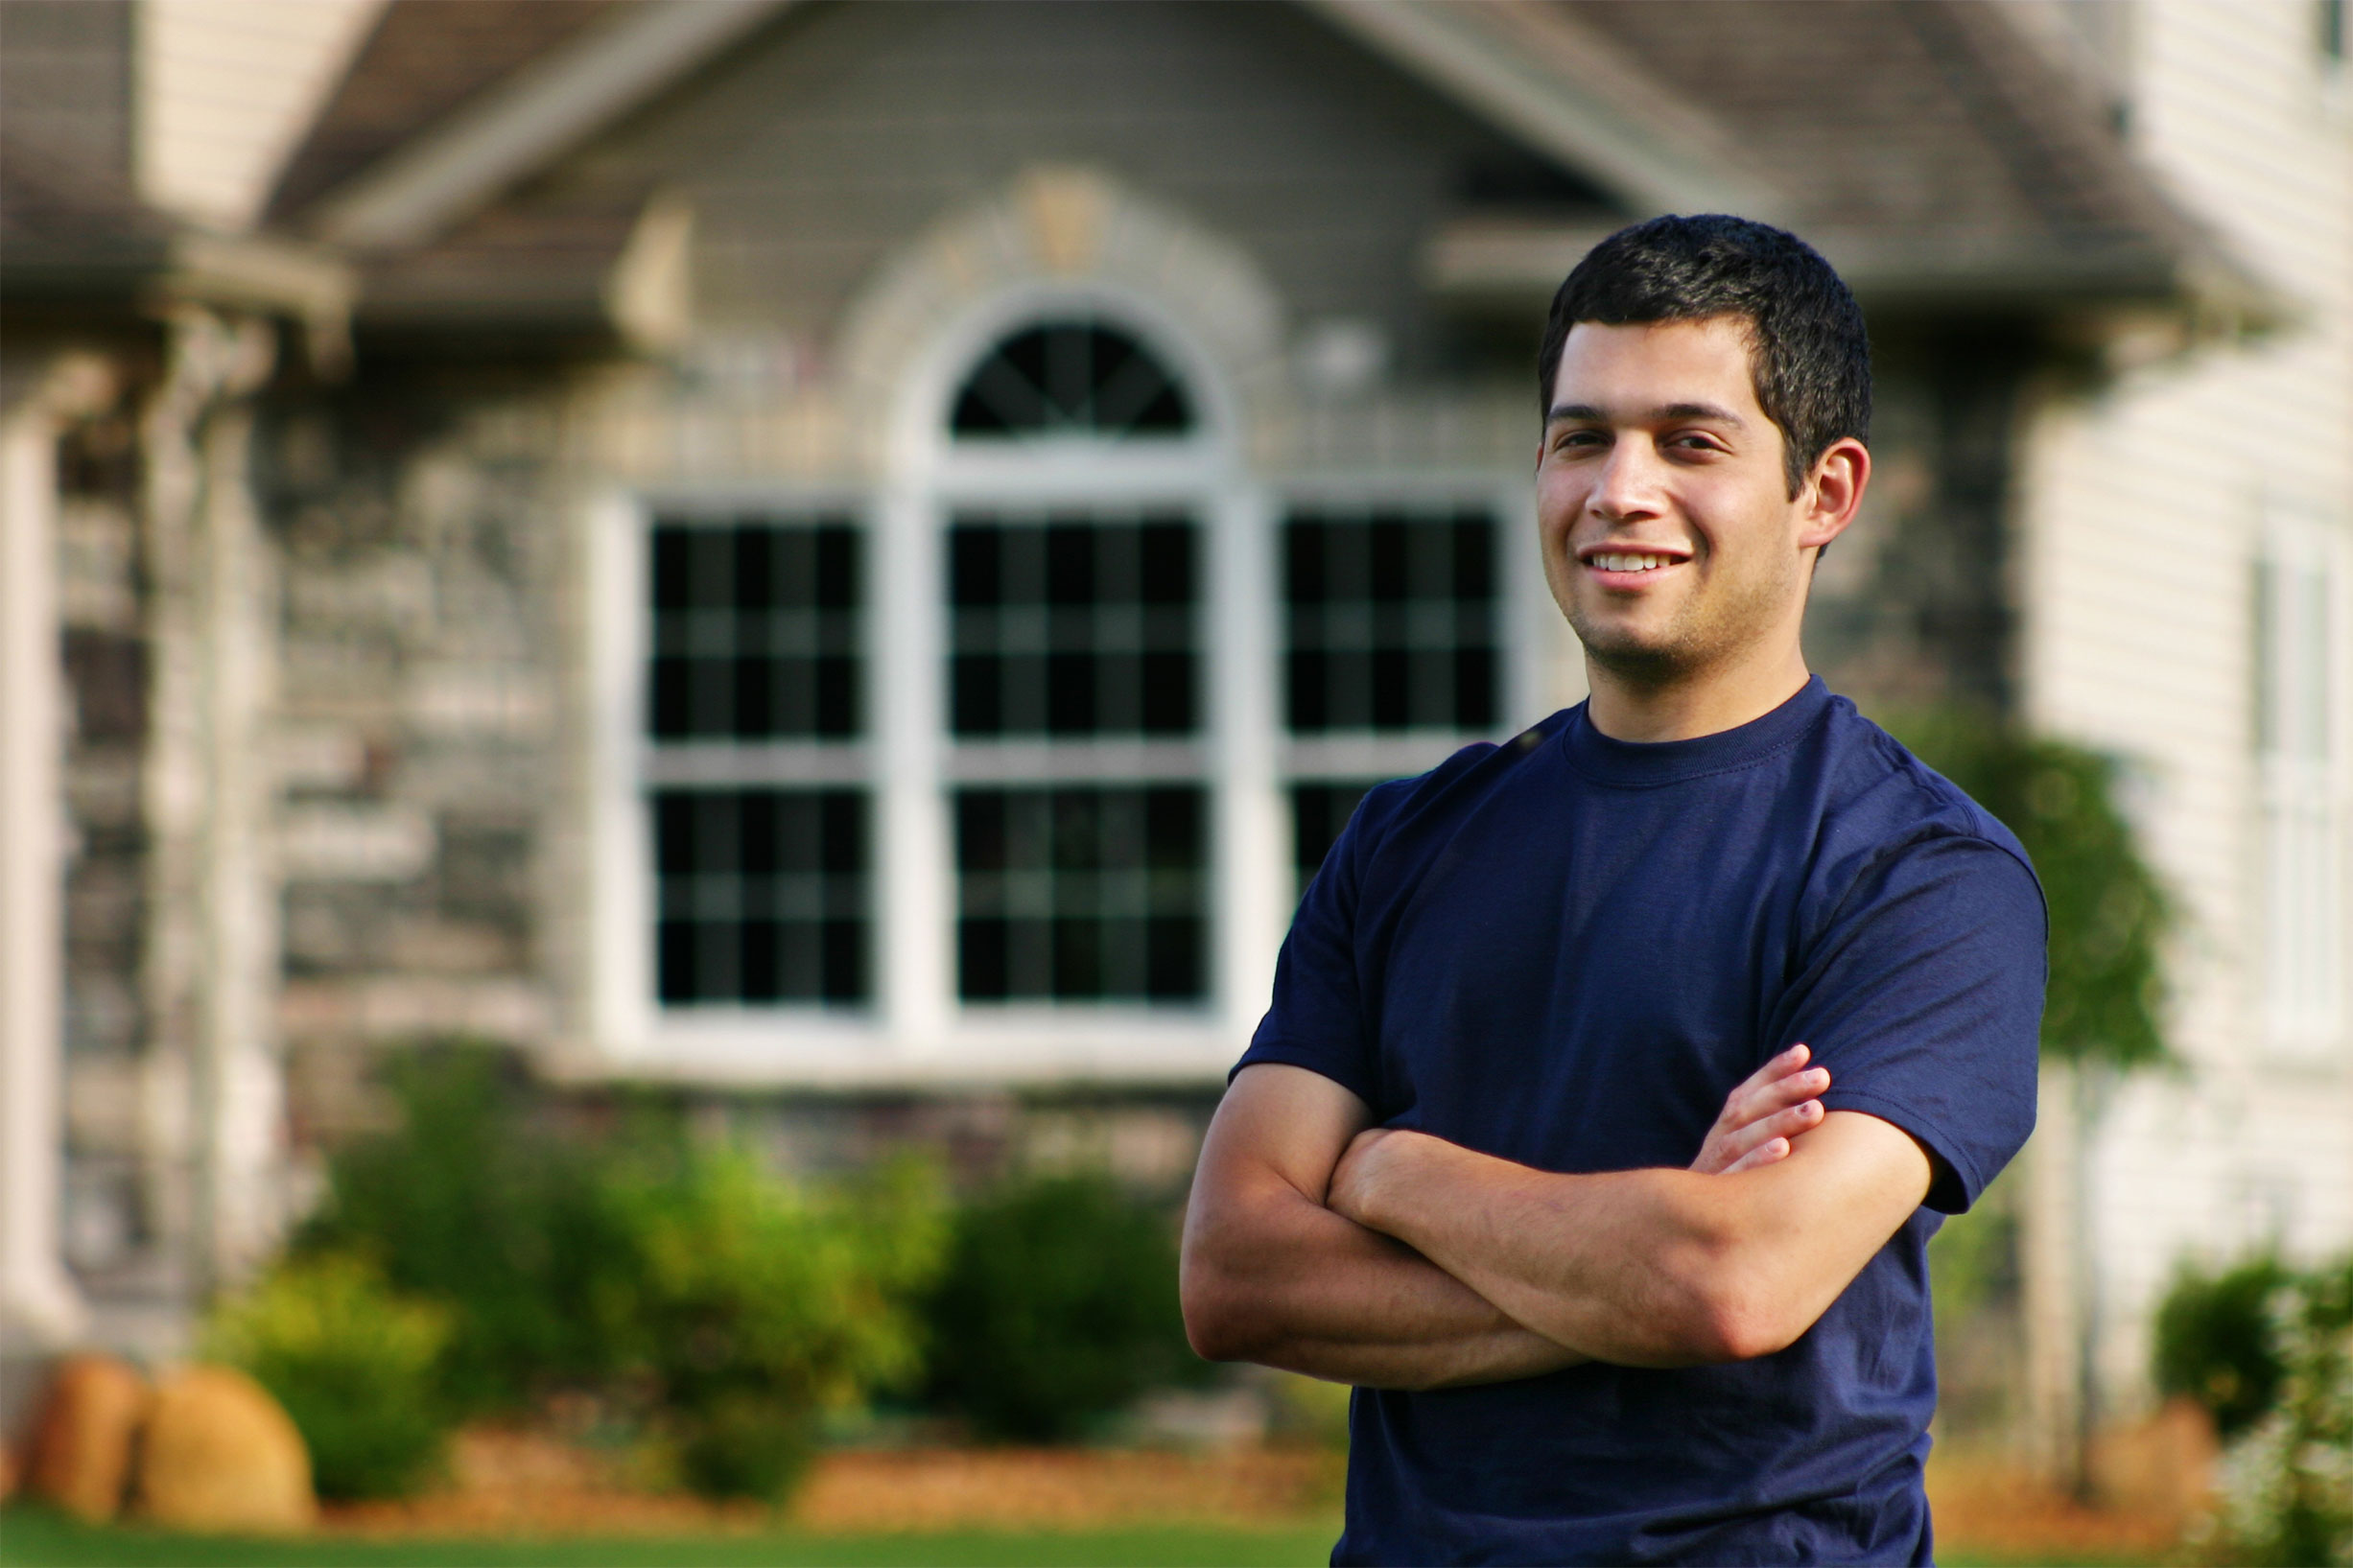 Hero is the smart way to finance your home renovation